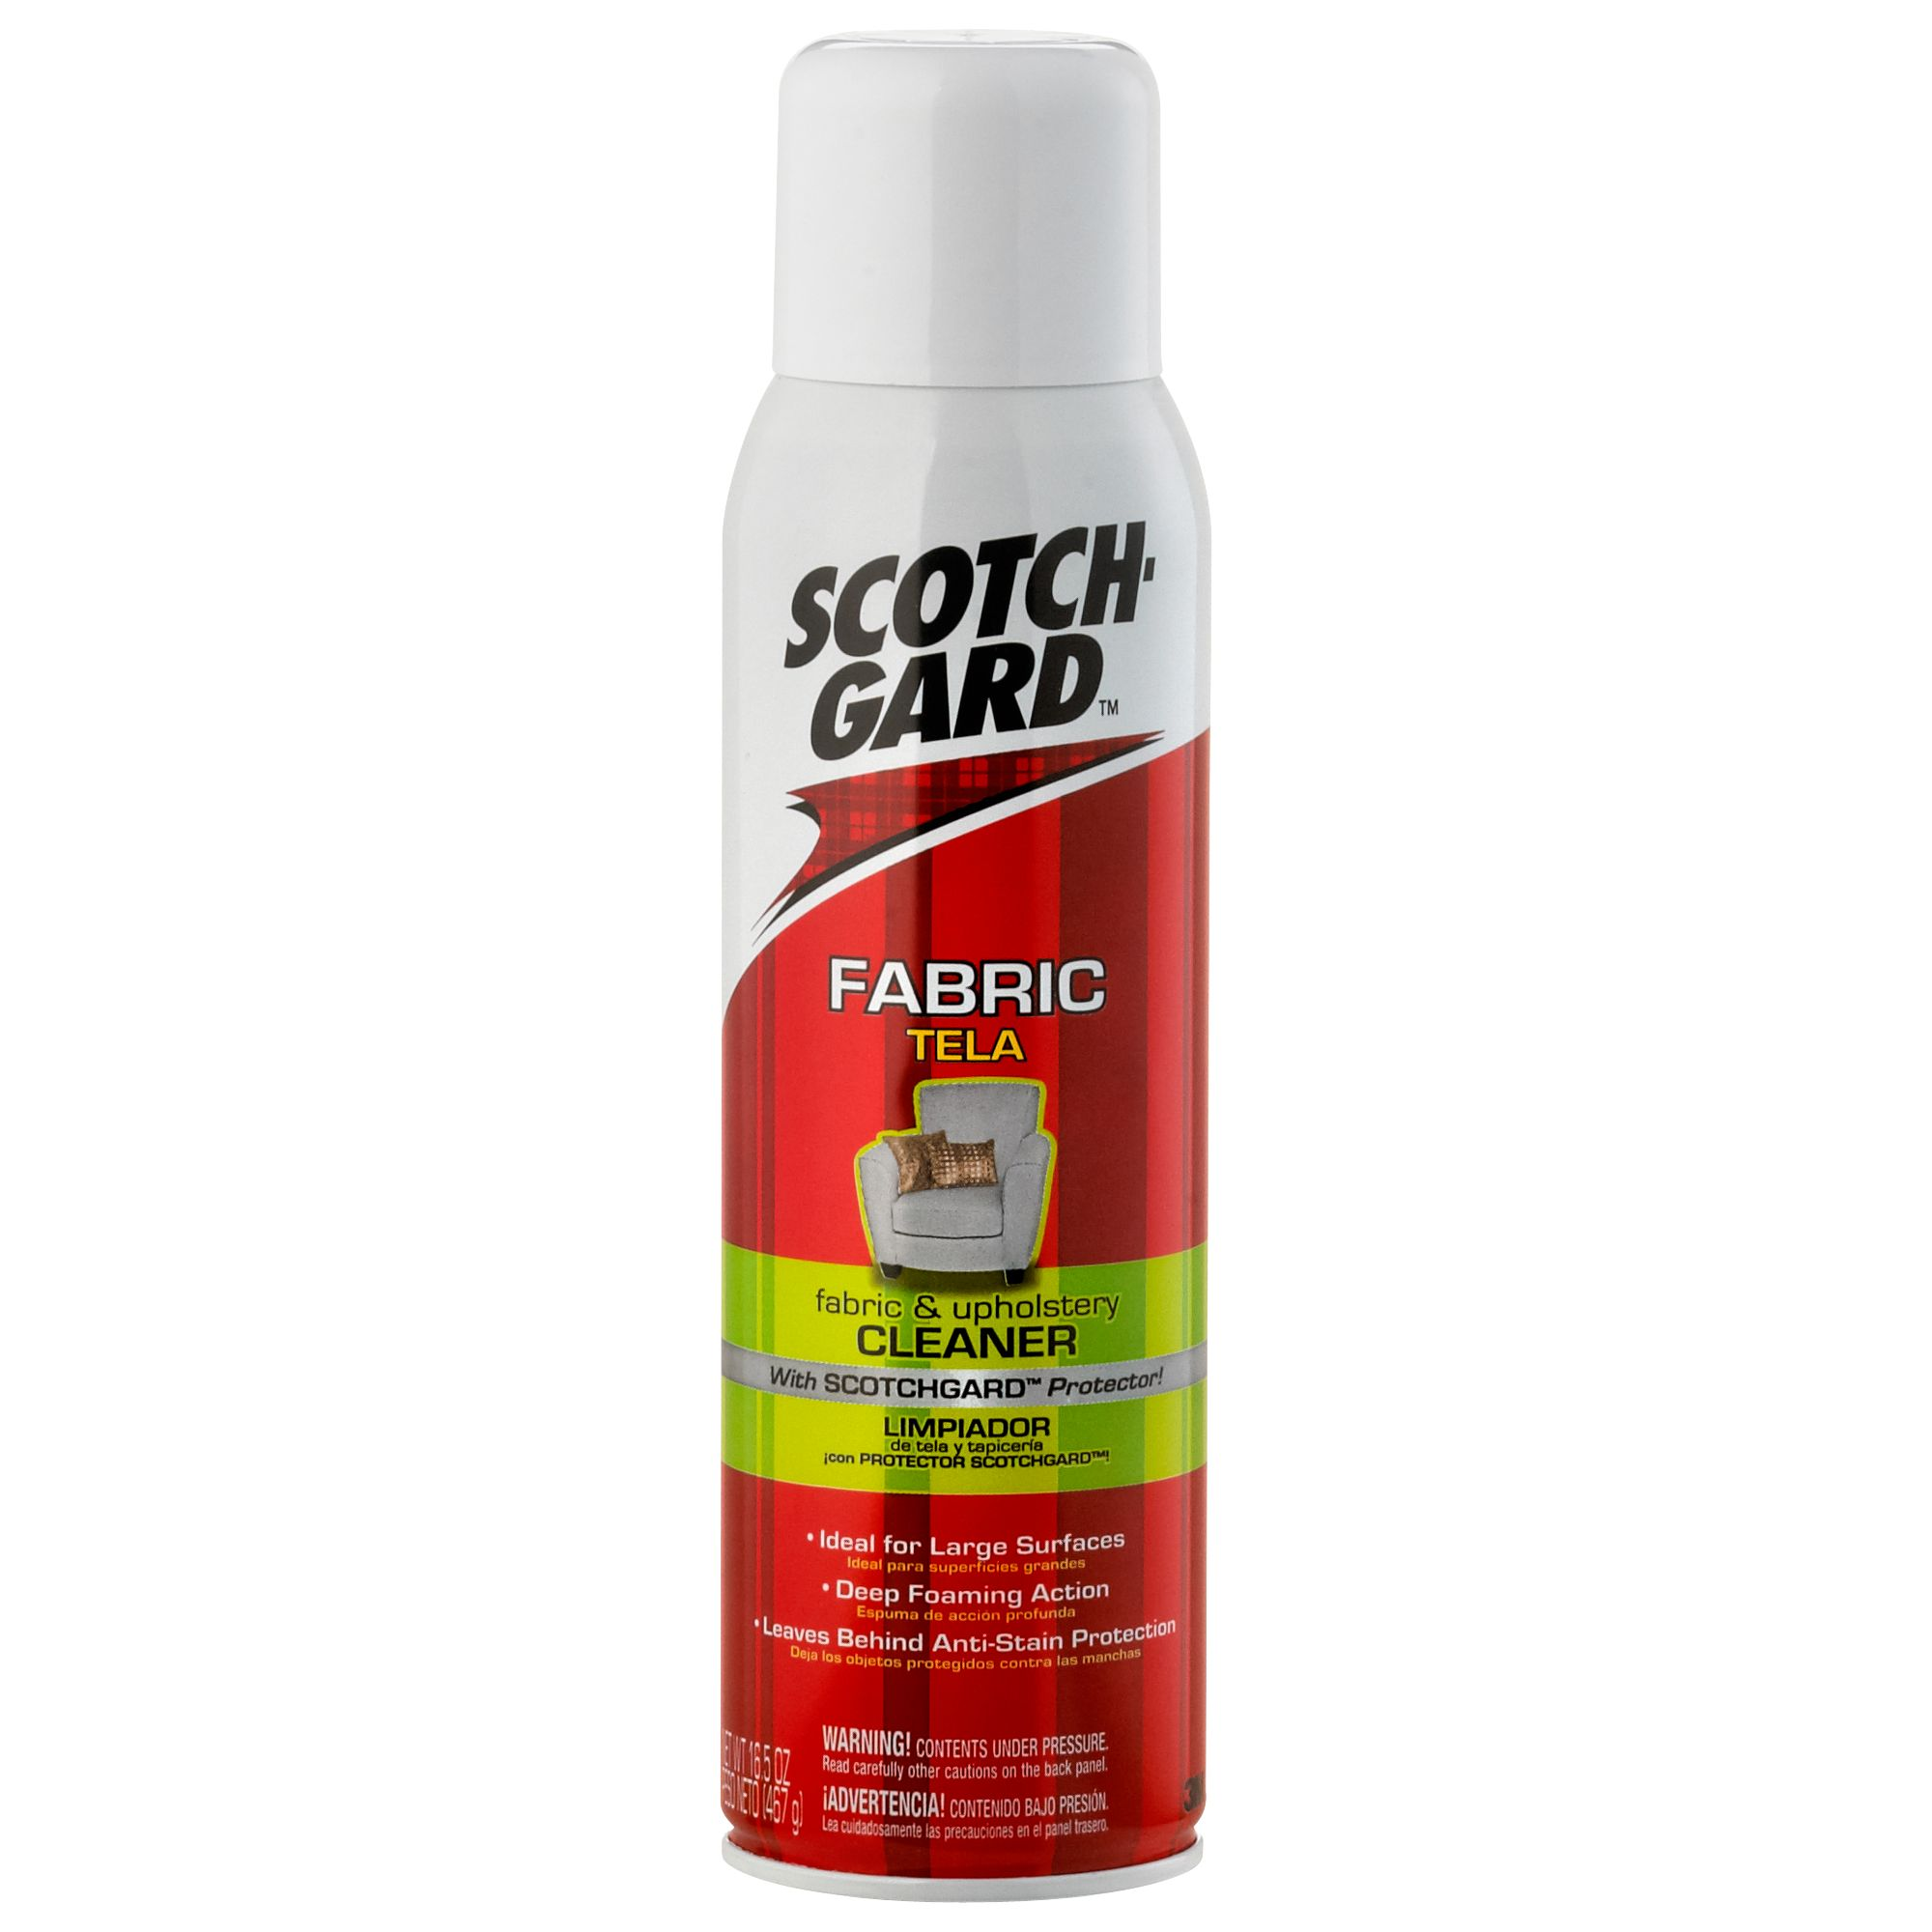 sofa fabric guard sectional with storage underneath scotchgard and upholstery cleaner protector 388ml at buyscotchgard online johnlewis com